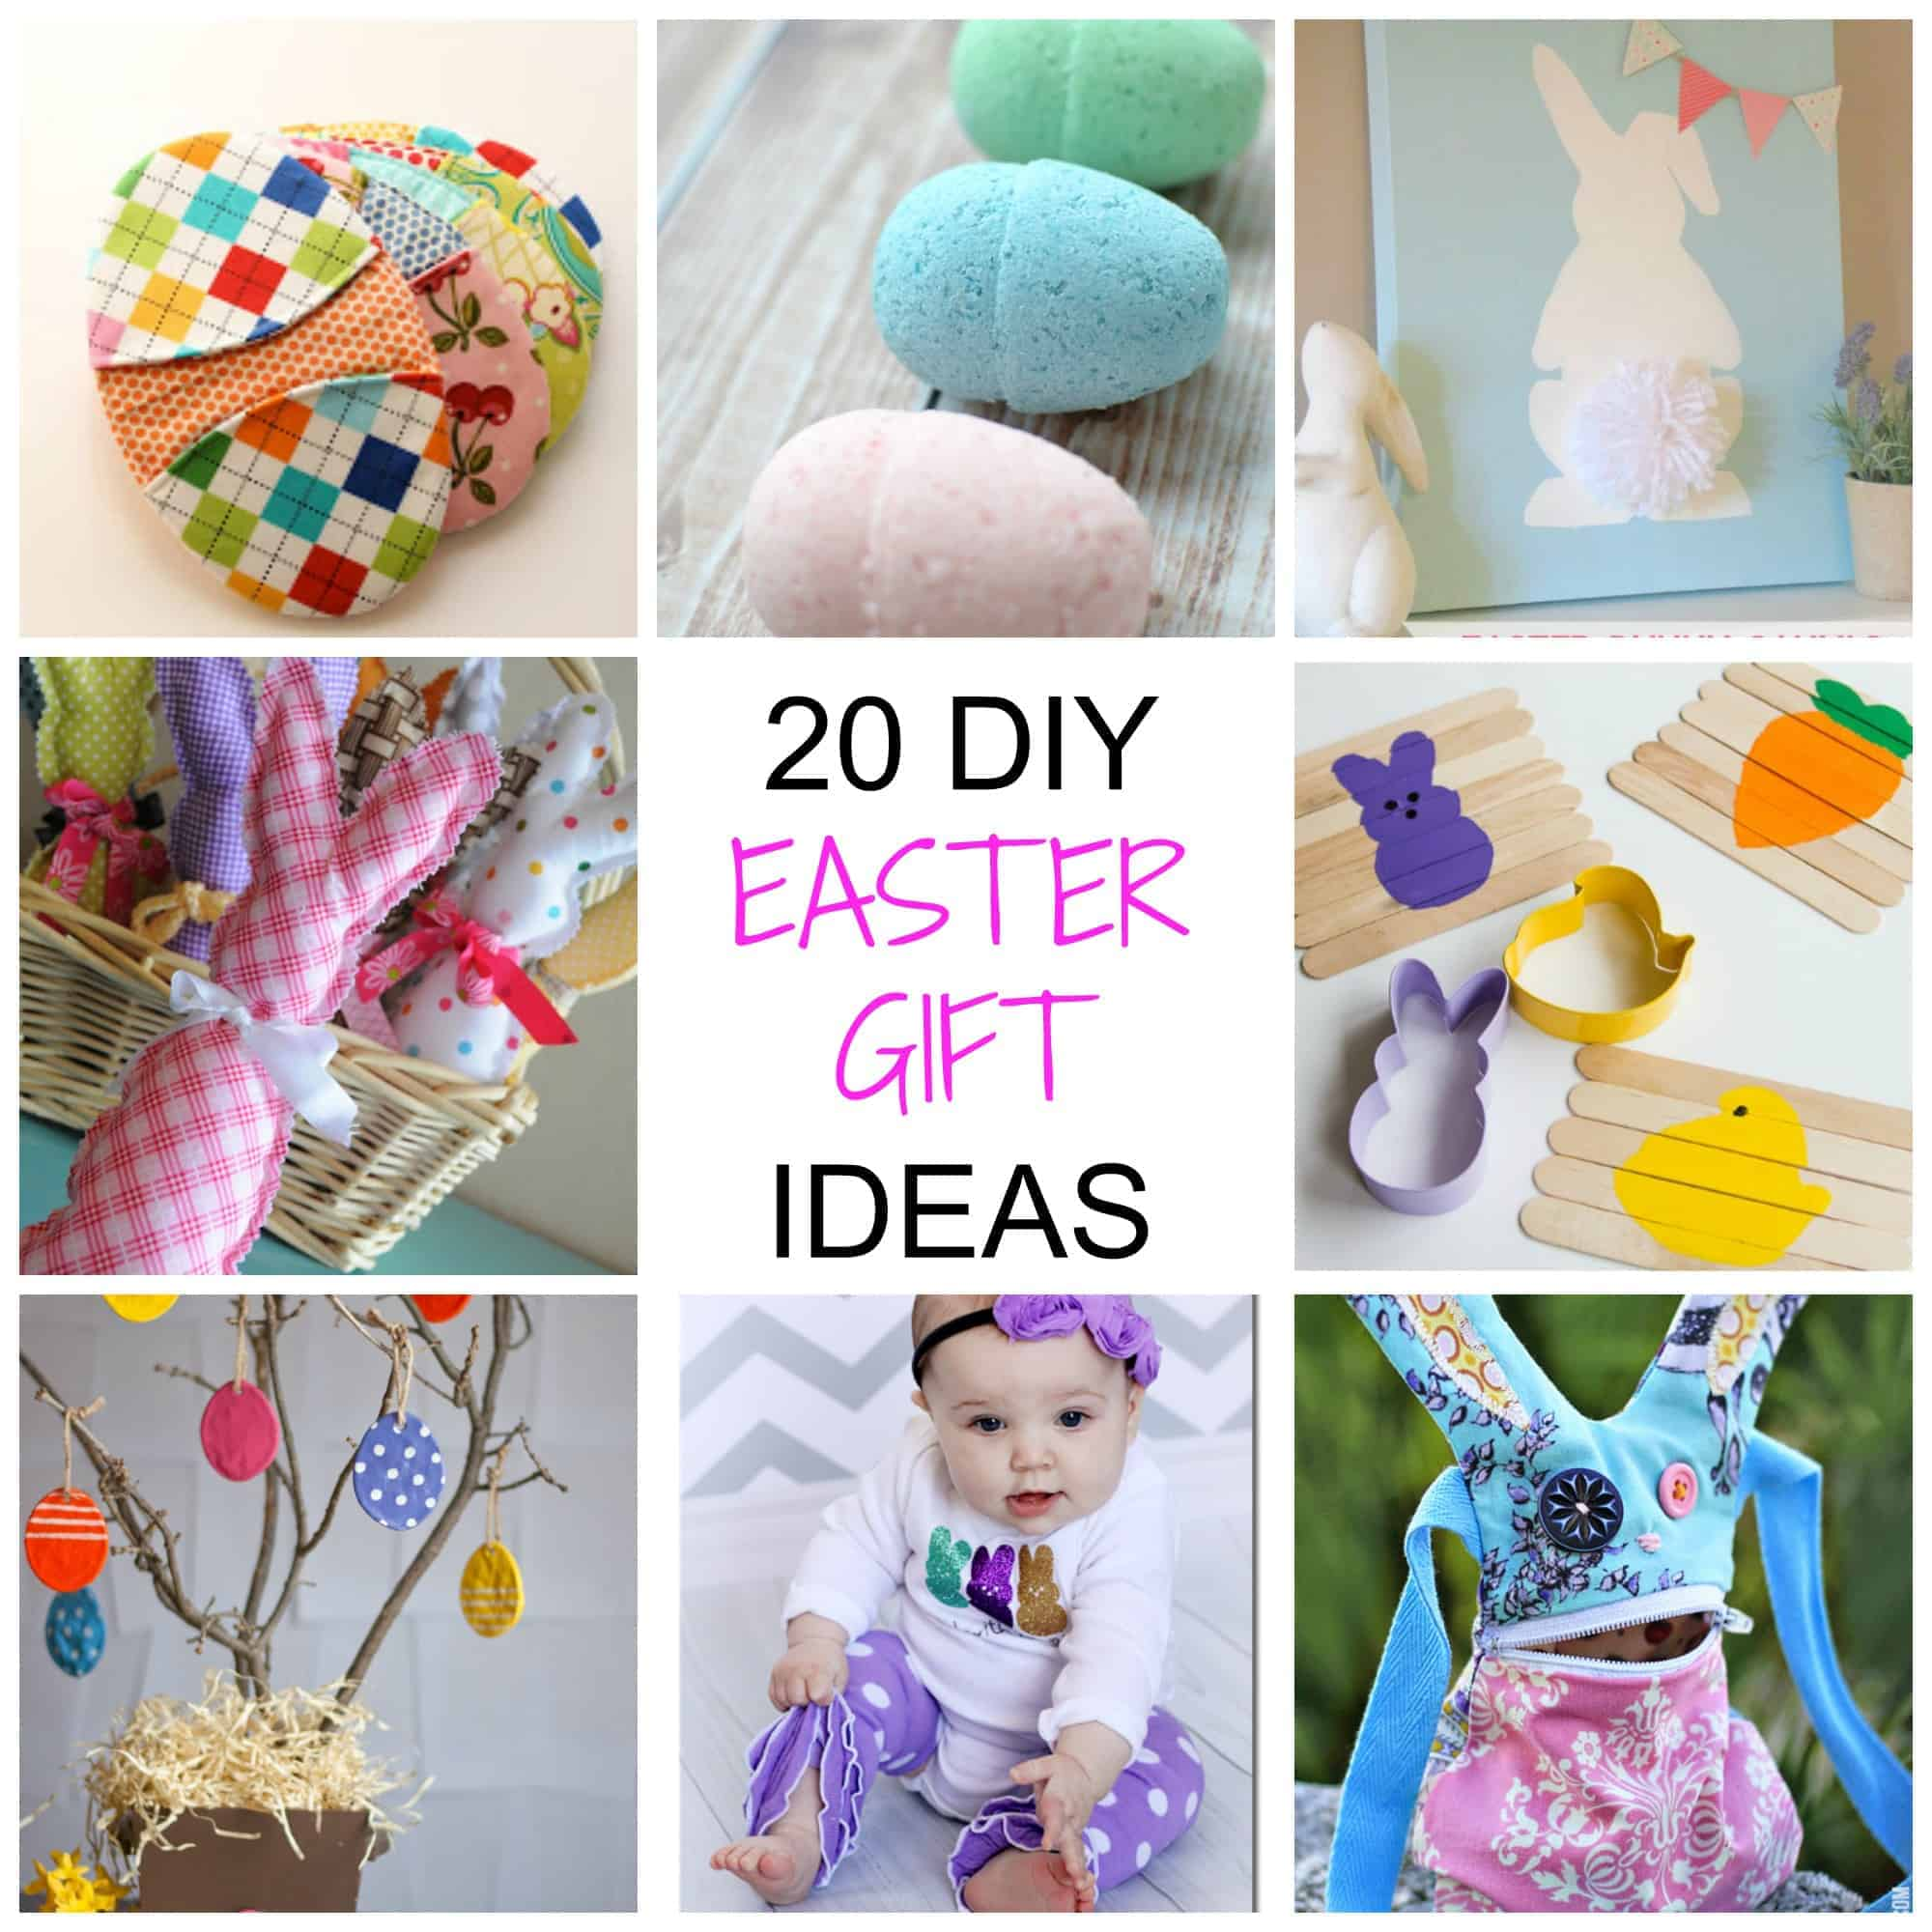 20 Non-Chocolate DIY Easter Gifts